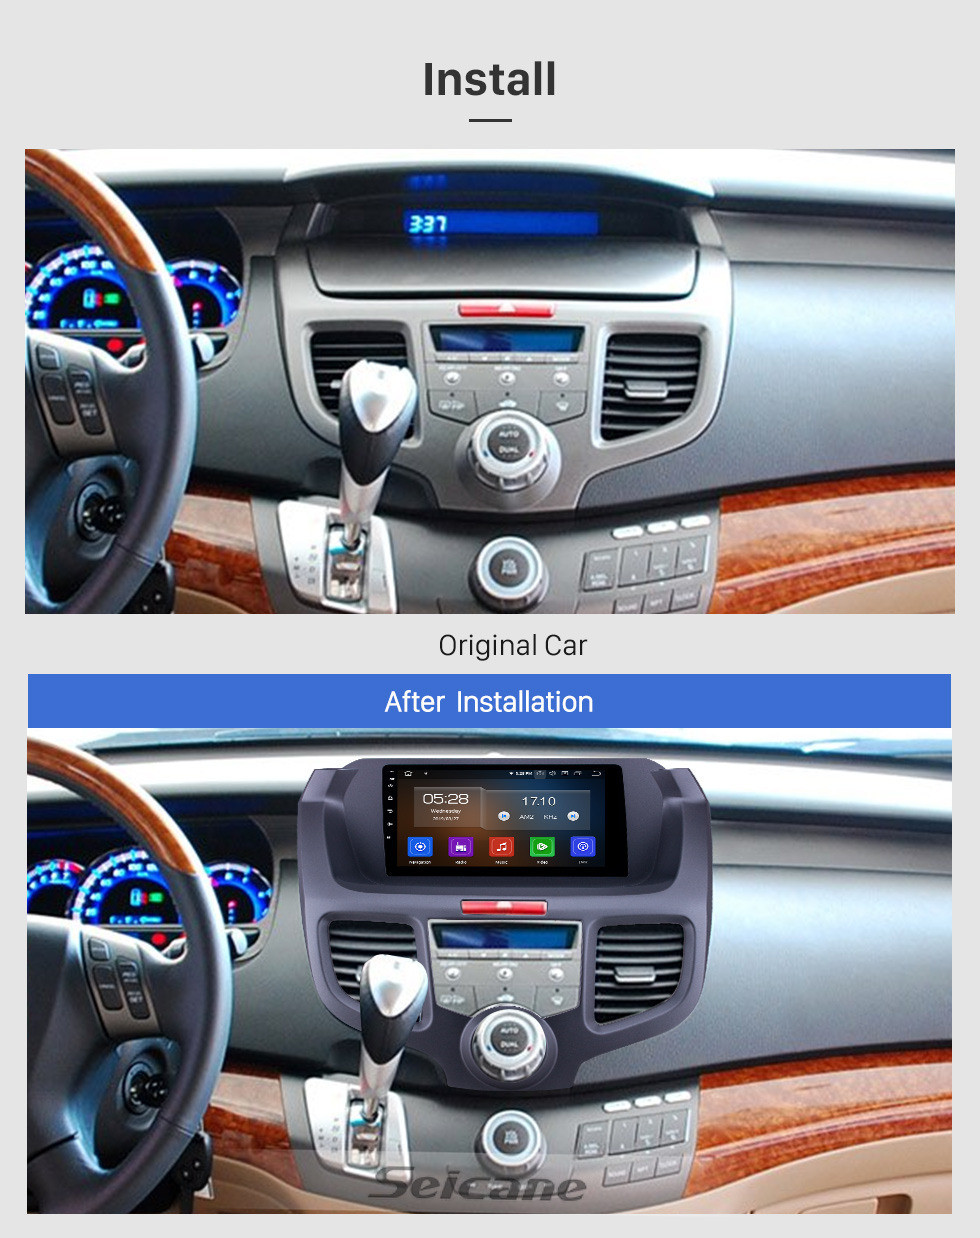 Seicane 2004-2008 Honda Odyssey Android 10.0 9 inch GPS Navigation Radio Bluetooth HD Touchscreen WIFI USB AUX Carplay support TPMS SWC